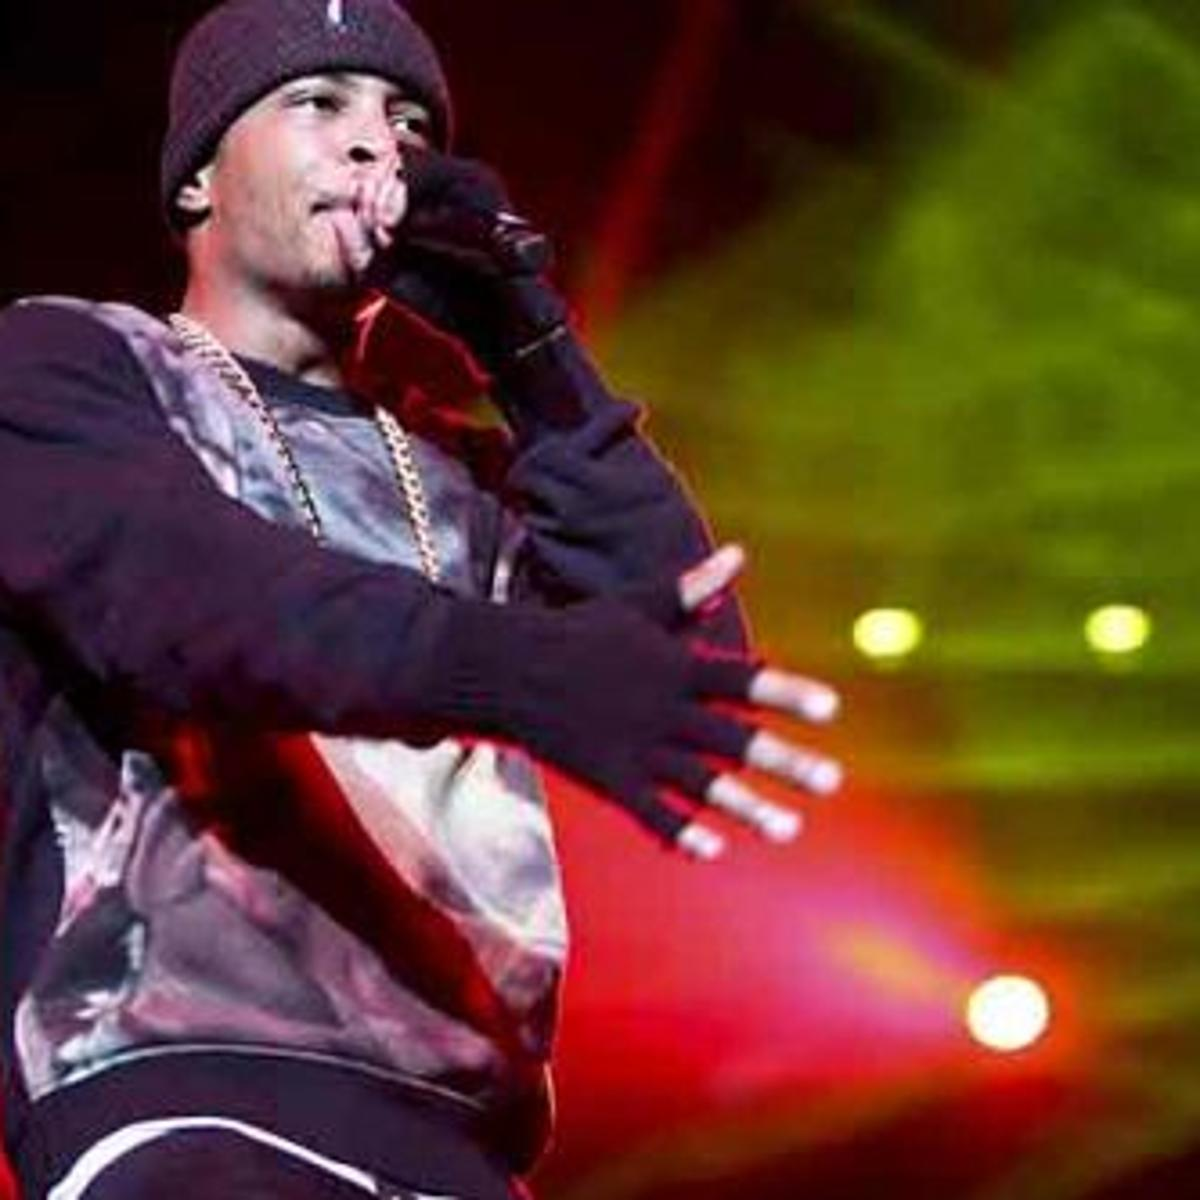 Concert review - T I , 2 Chainz, Kelly Rowland | Music